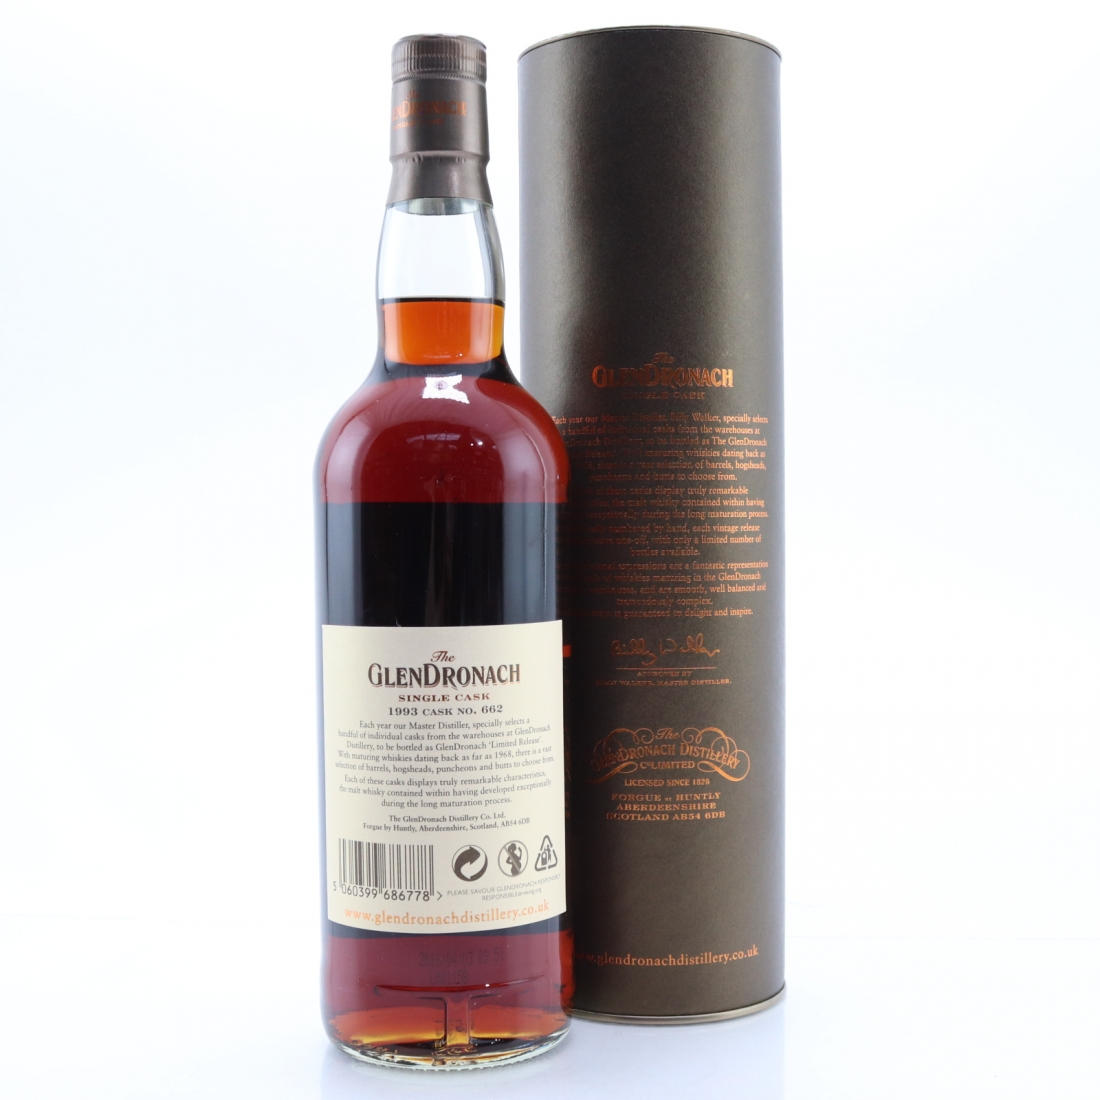 Glendronach 1993 Single Cask 25 Year Old #662 / 25th Anniversary of Whisky.de